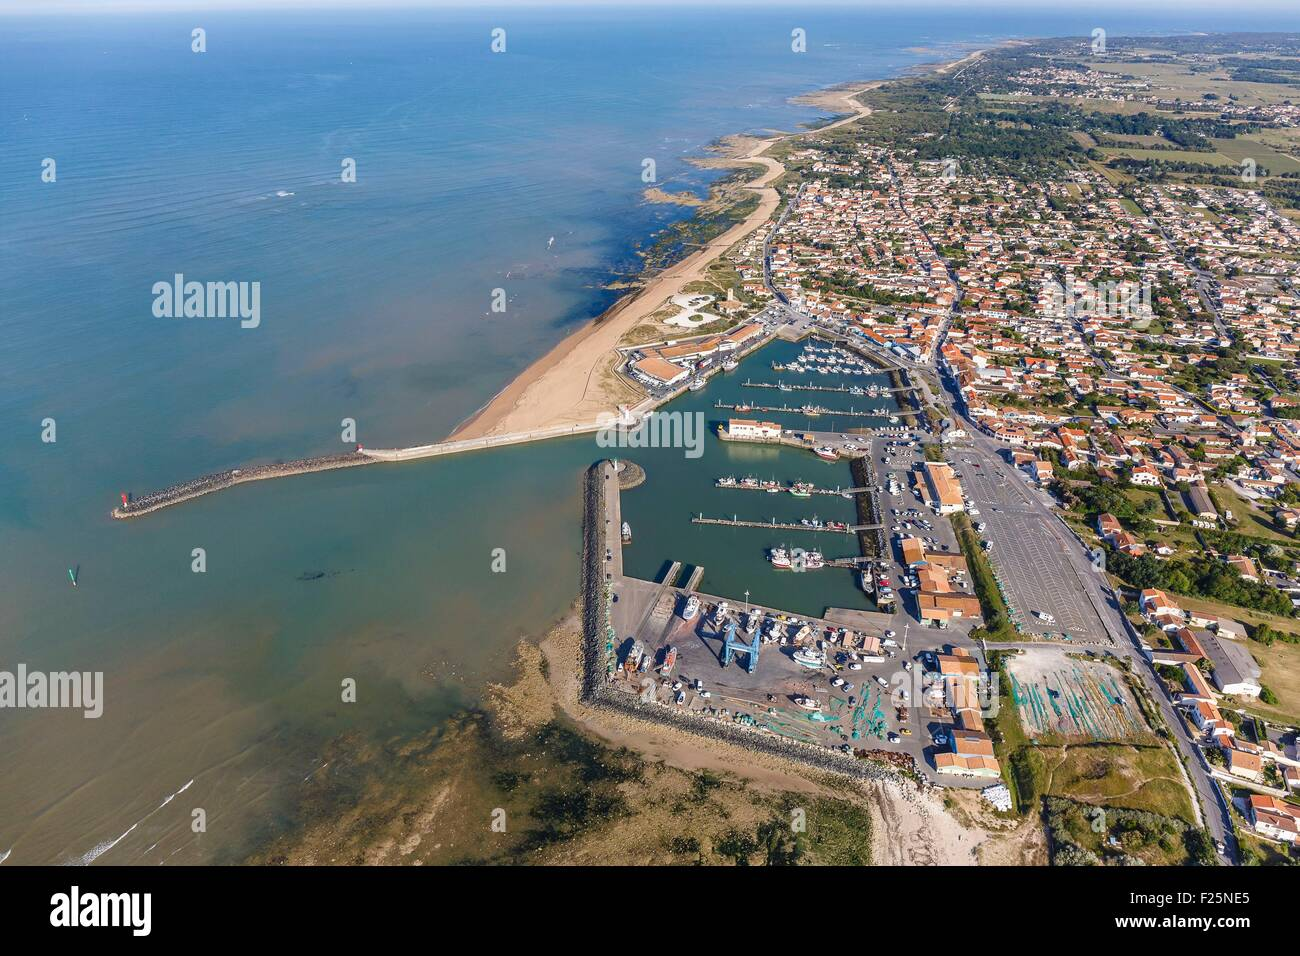 France, Charente Maritime, Saint Pierre d'Oleron, la Cotiniere fishing port and the town (aerial view) - Stock Image